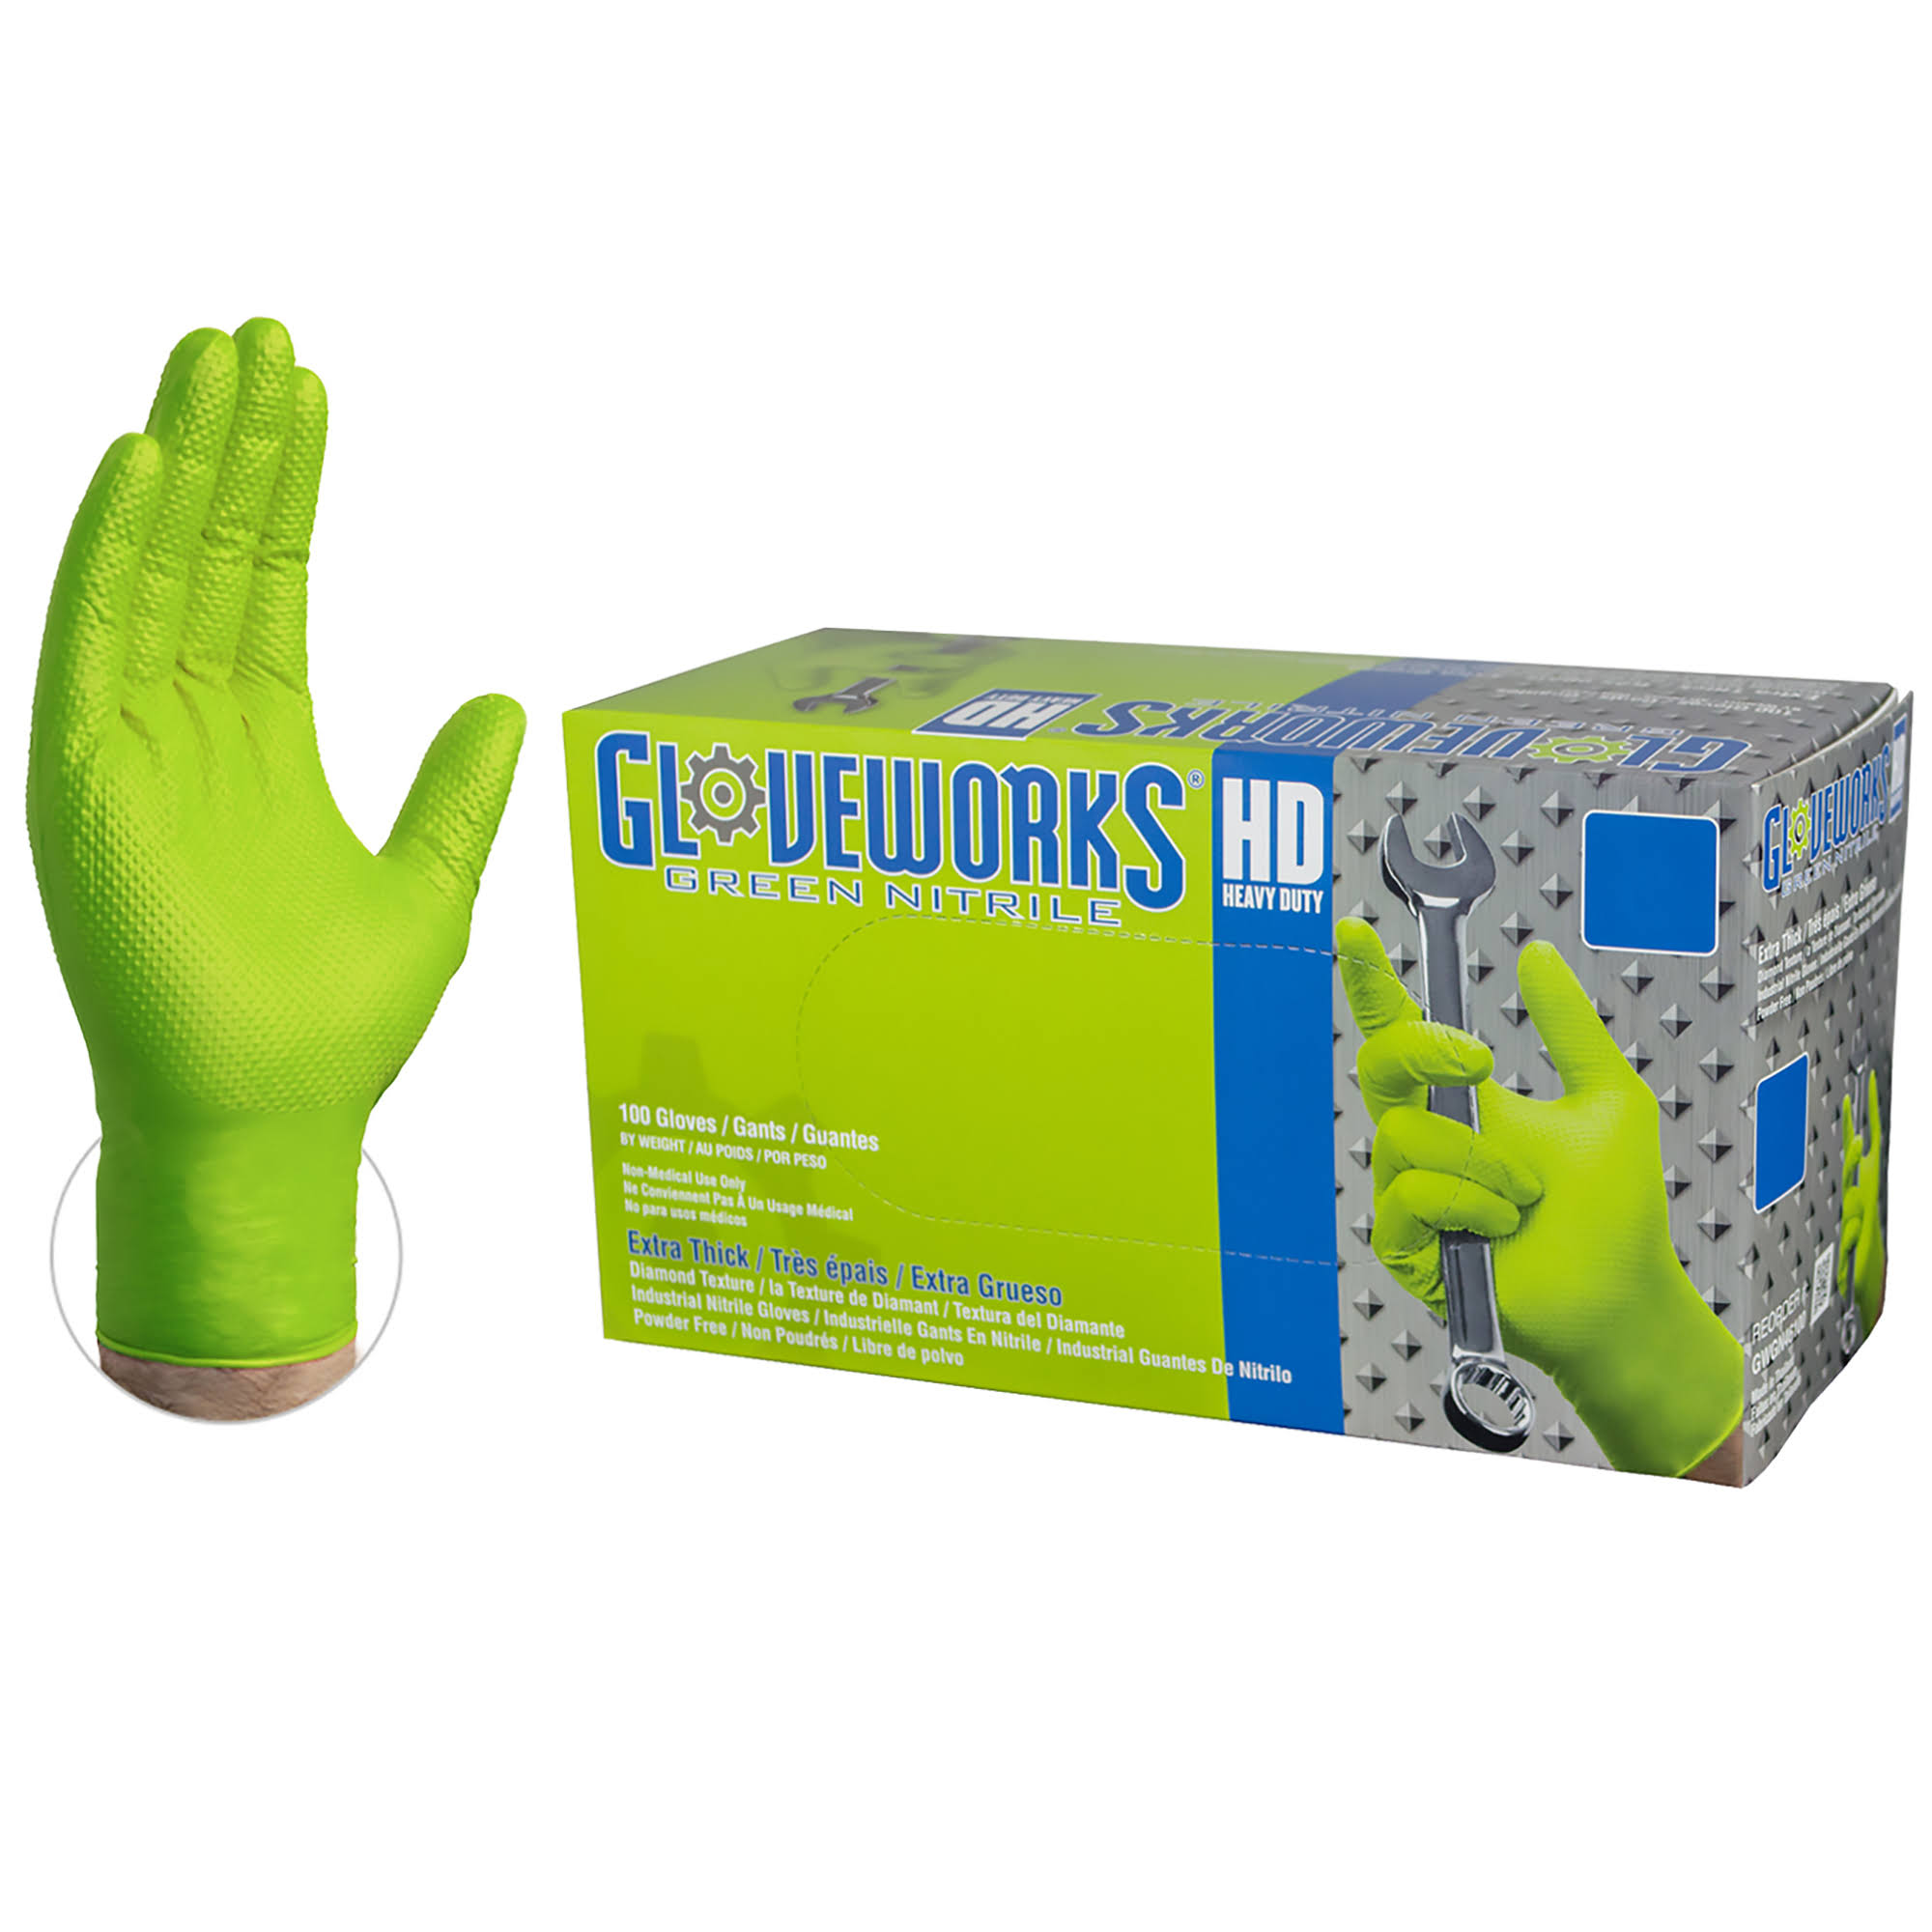 Ammex Gloveworks Heavy Duty Nitrile Gloves - Green, X-Large, Box of 100